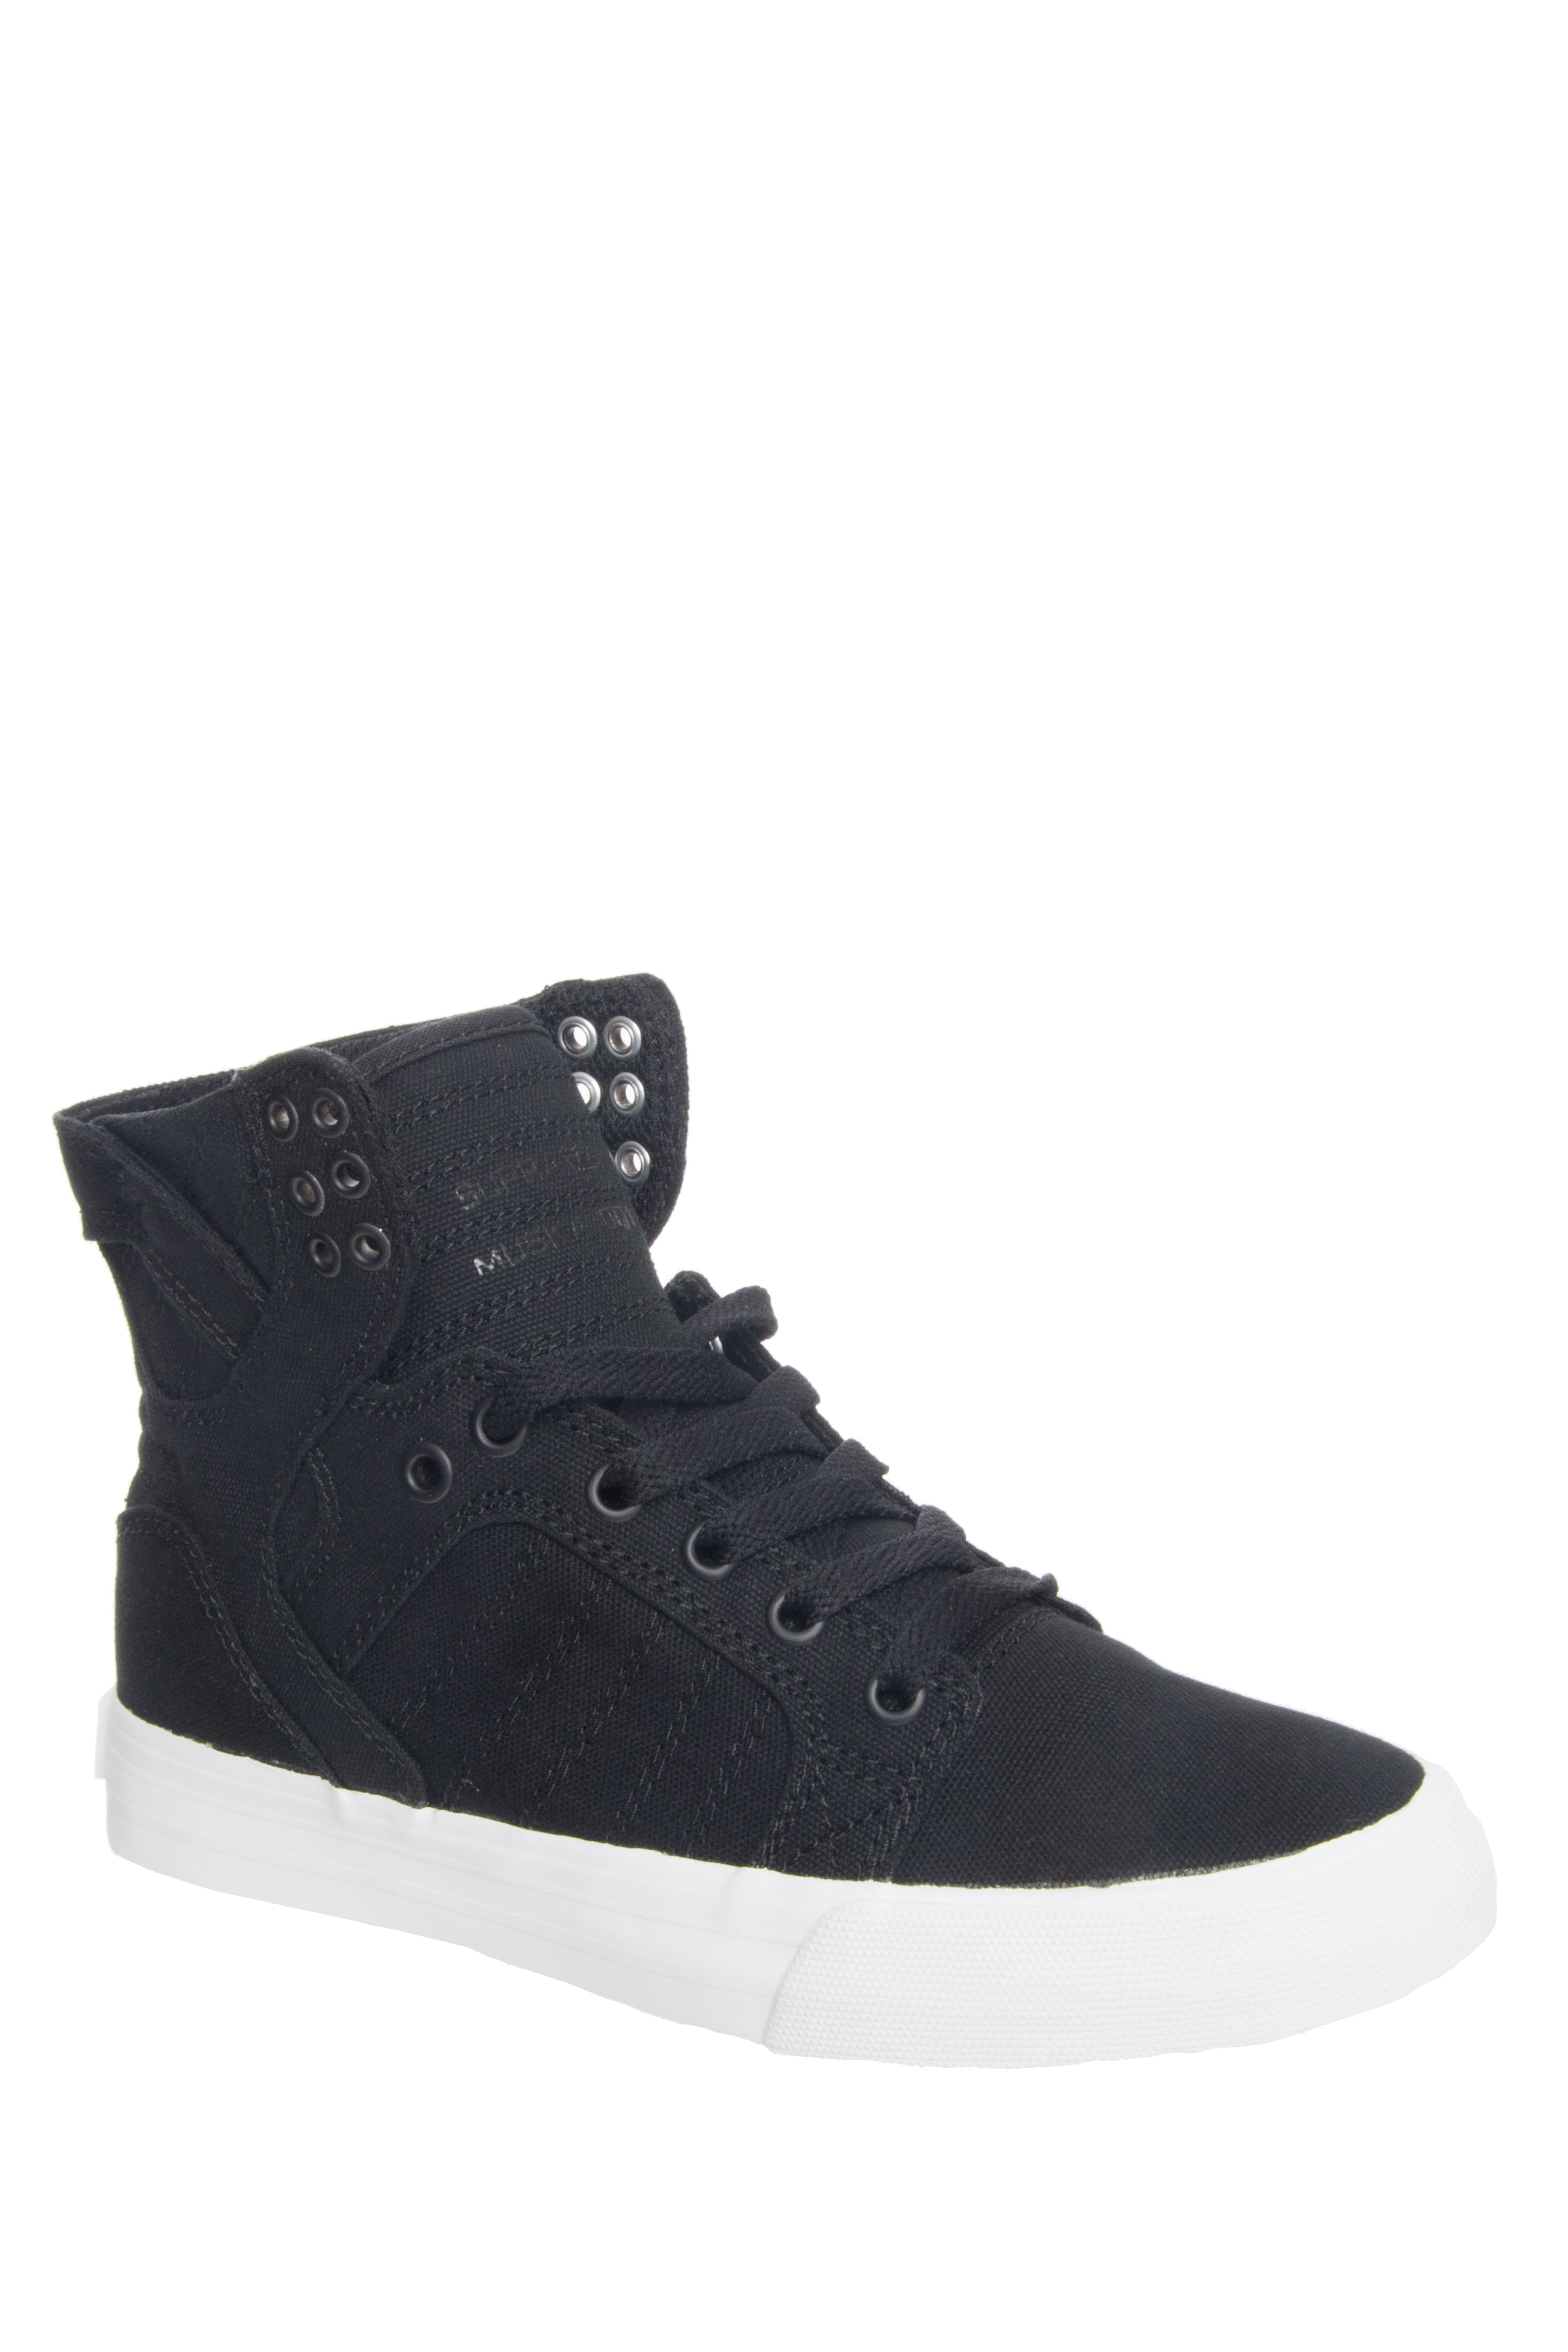 Supra Skytop D High Top Sneakers - Black